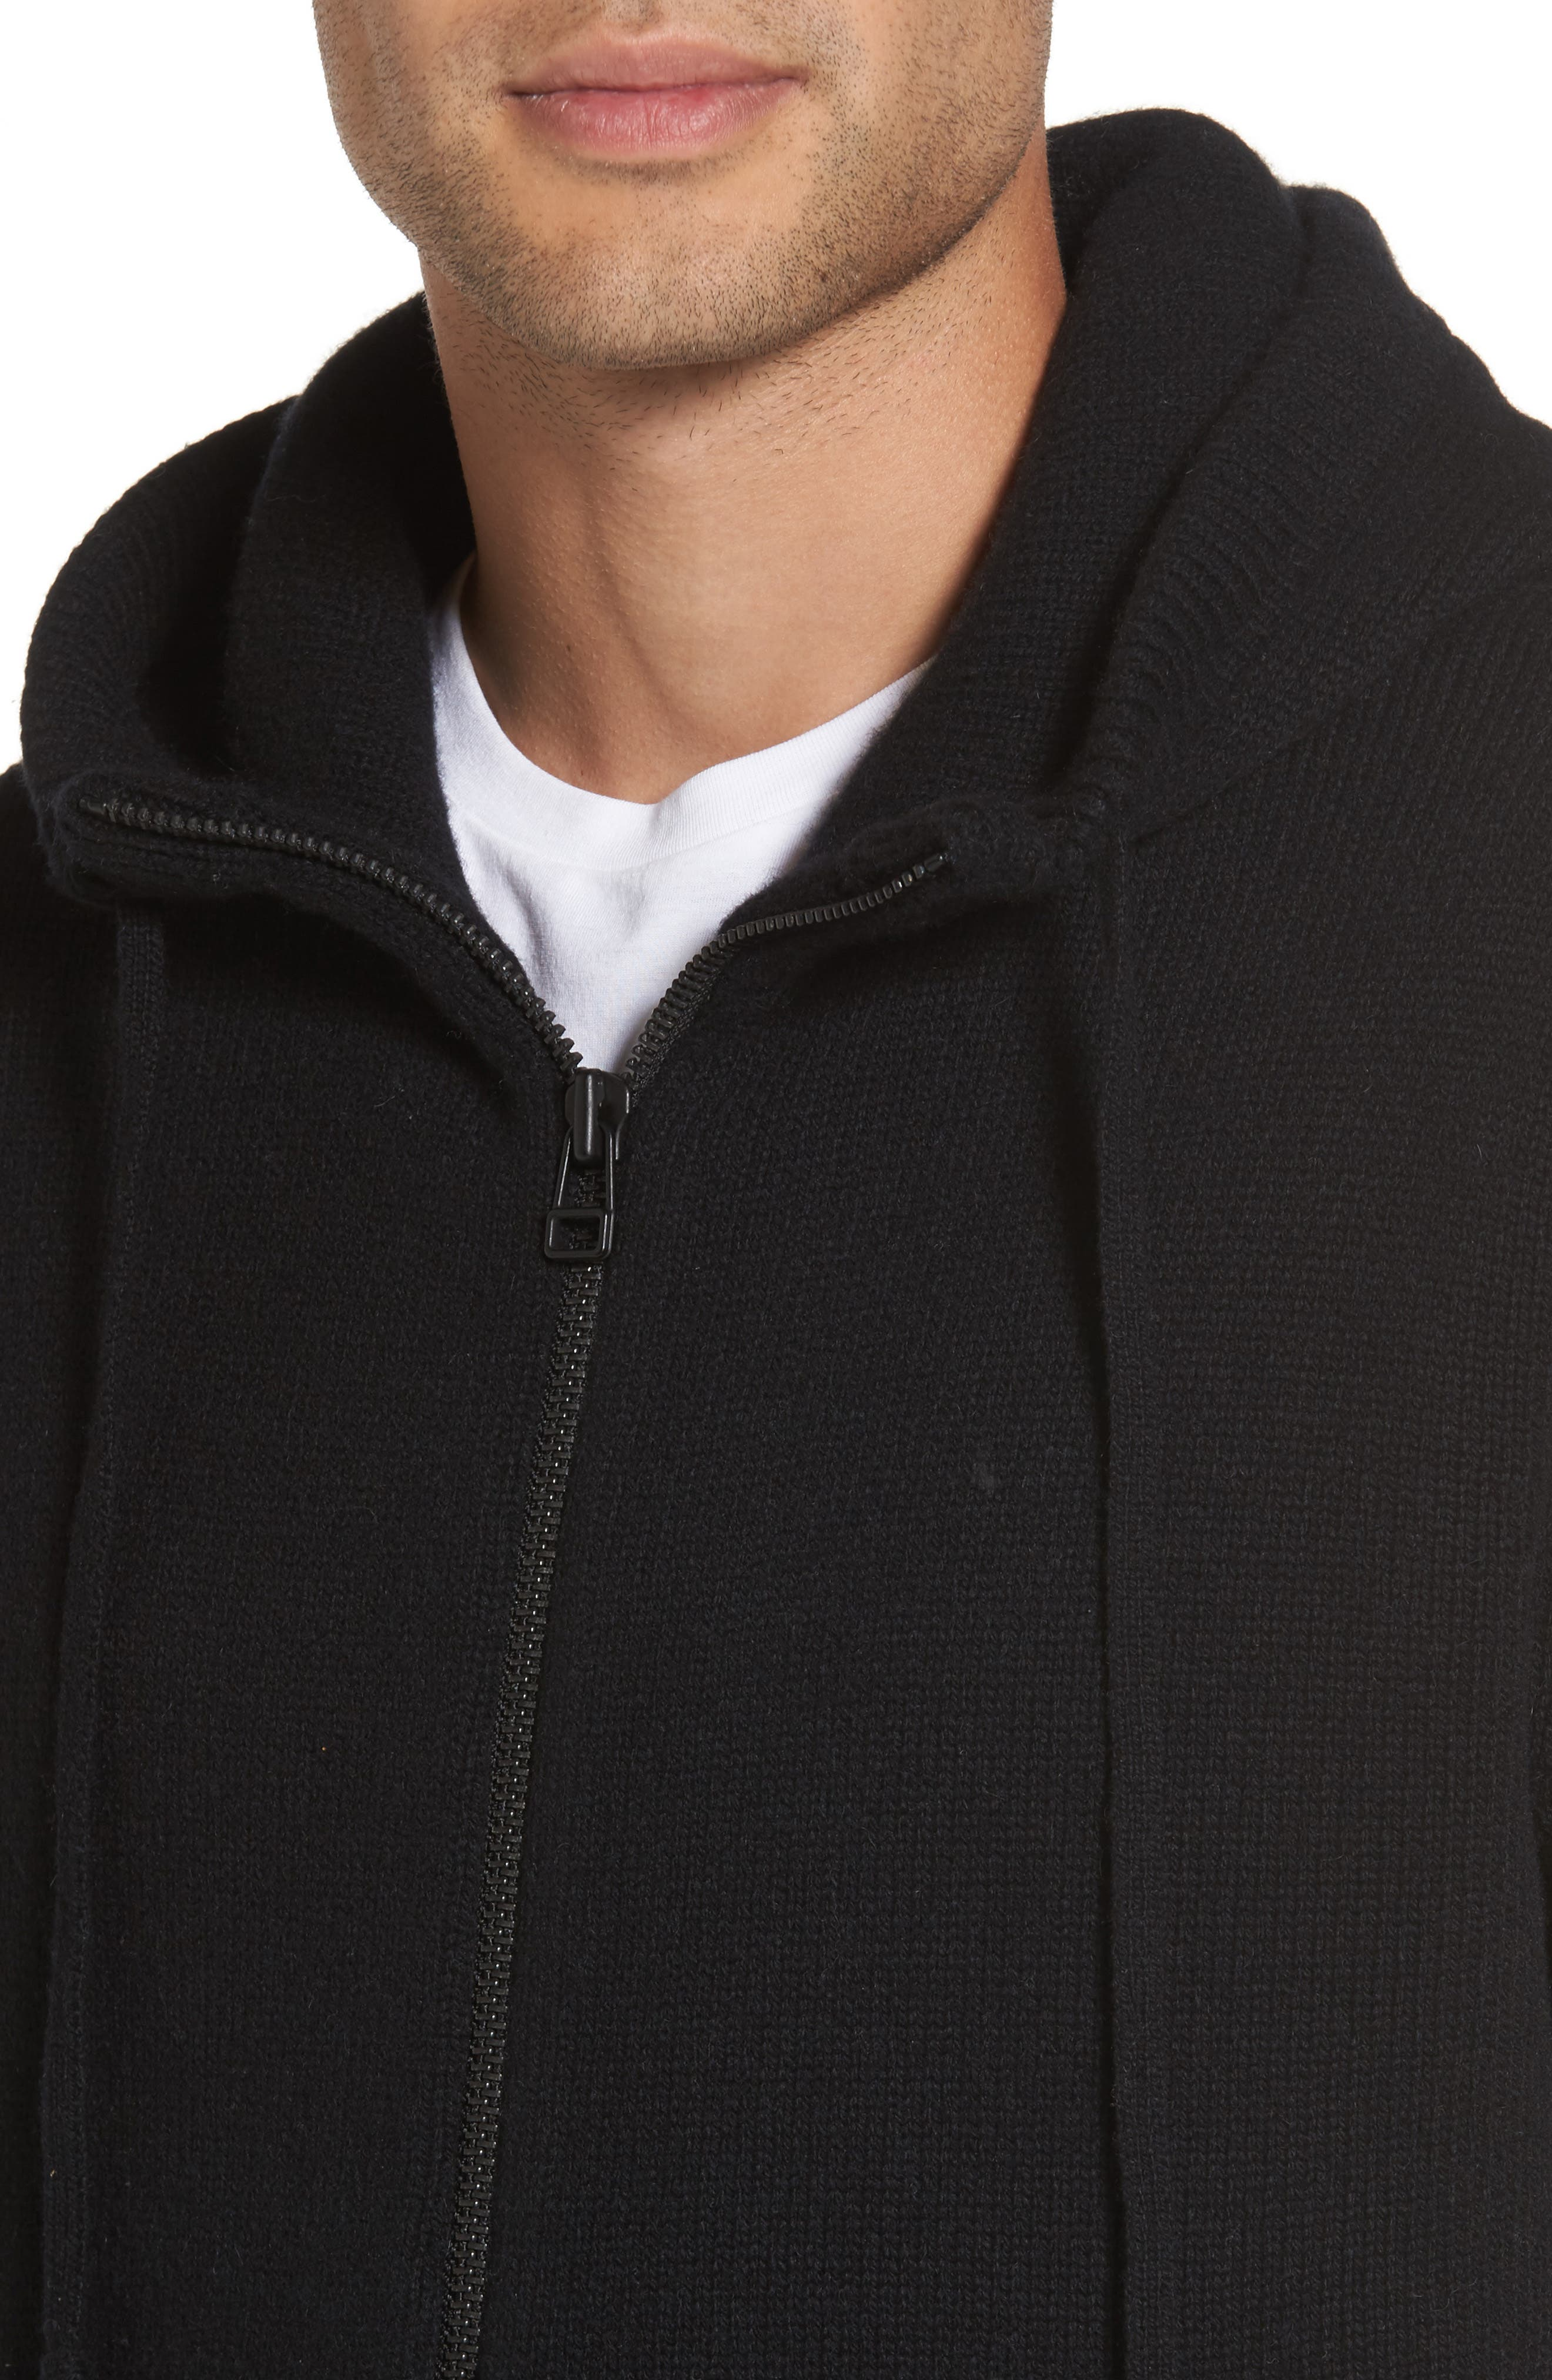 Front Zip Wool & Cashmere Hoodie,                             Alternate thumbnail 4, color,                             Black